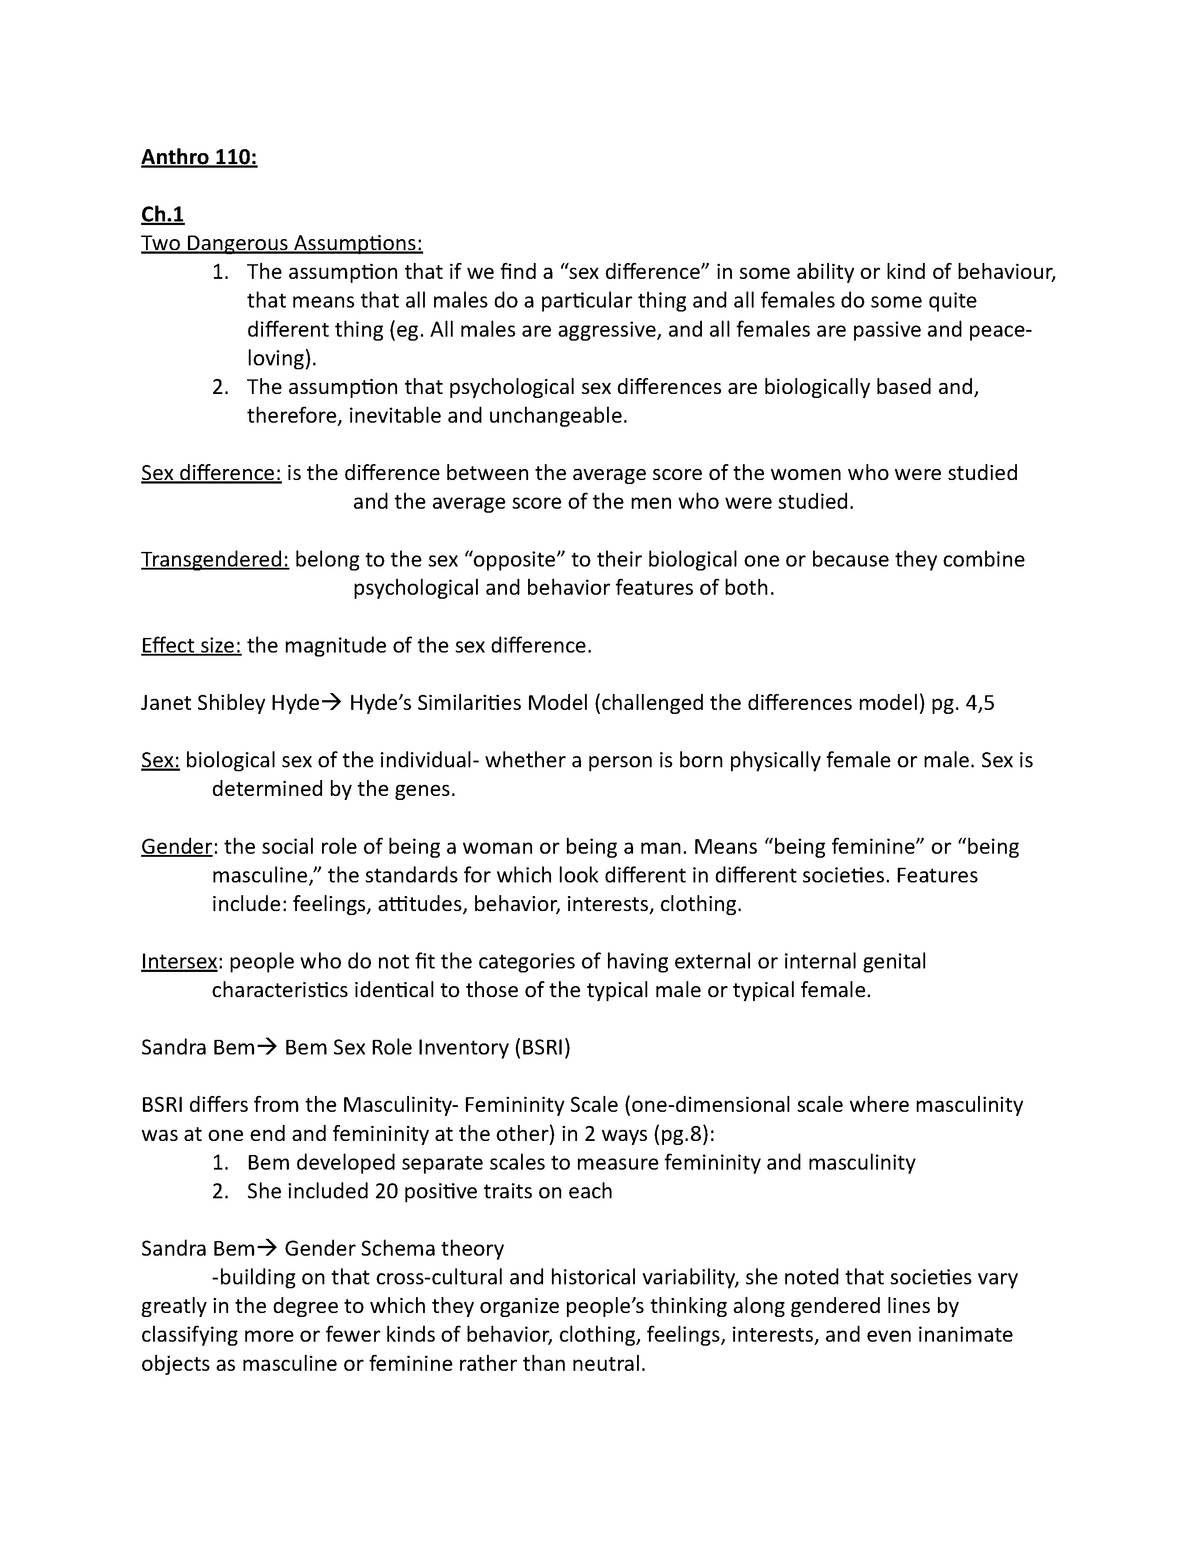 Lecture Notes, Lectures 1-7 - Anth 110 - MacEwan - StuDocu